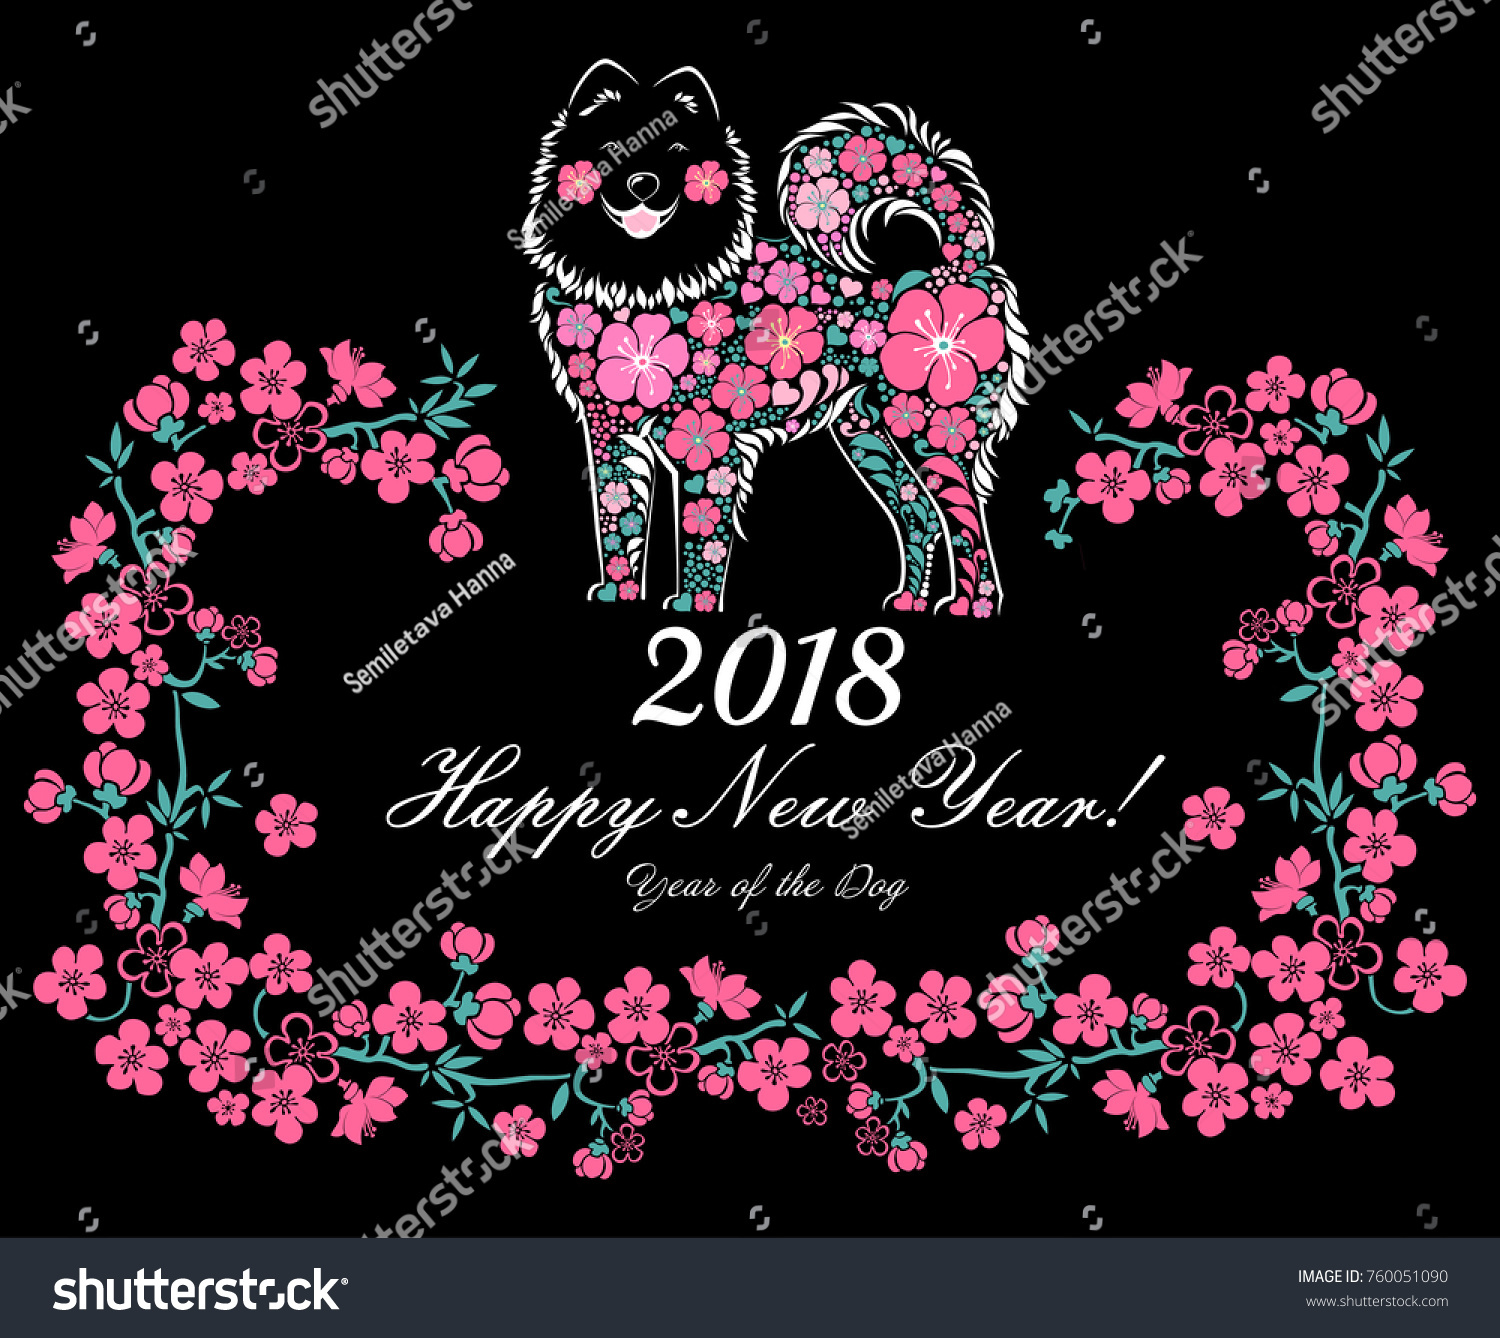 2018 Happy New Year Greeting Card Stock Vector 760051090 Shutterstock